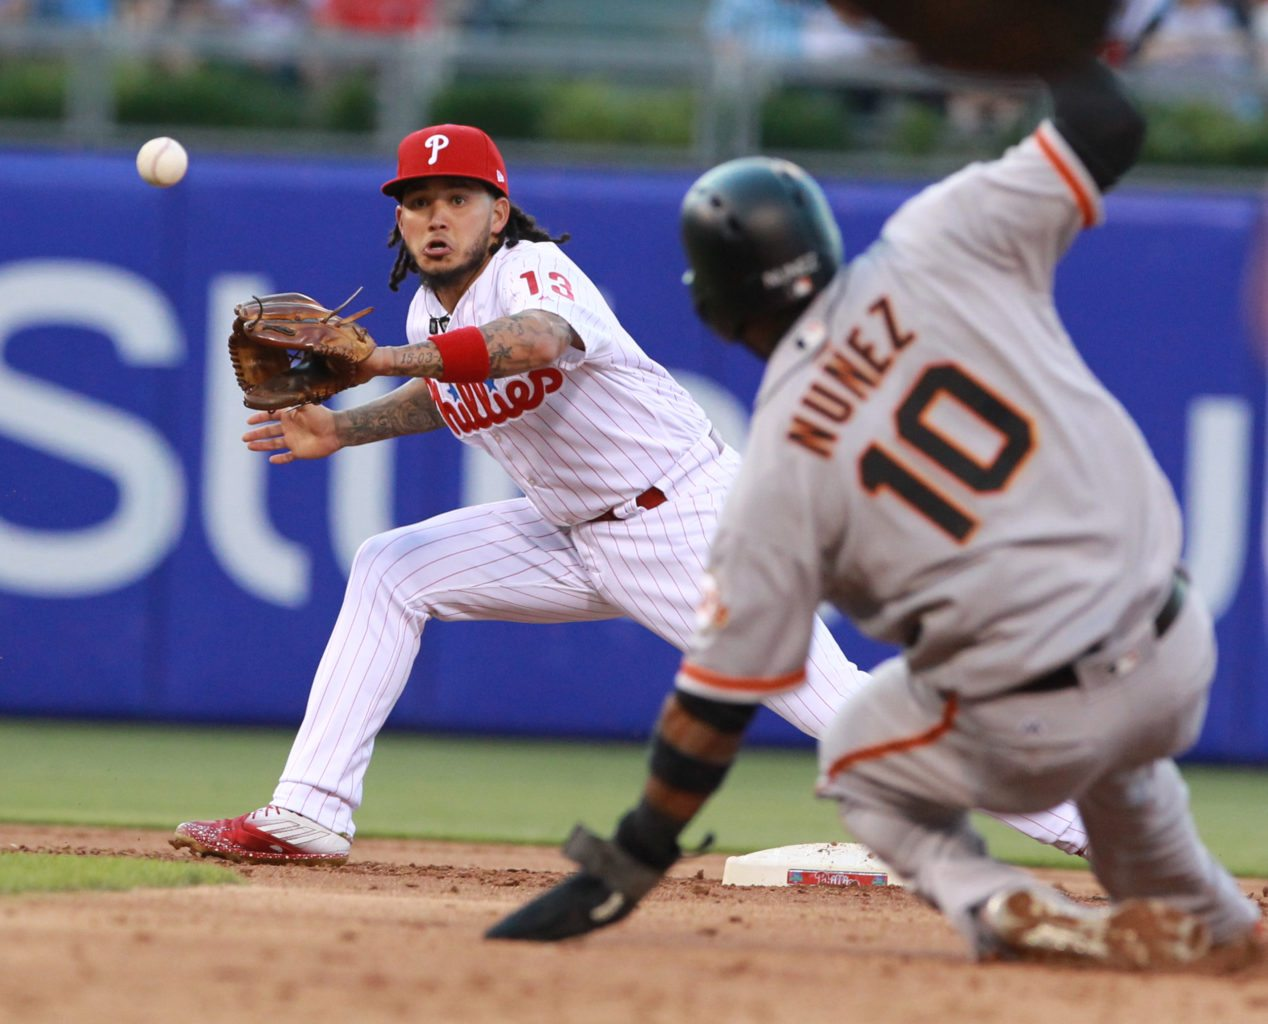 Philadelphia Phillies shortstop Freddy Galvis, left, takes the throw as the San Francisco Giants' Eduardo Nunez is forced out at second base in the second inning at Citizens Bank Park in Philadelphia on Friday, June 2, 2017. The Giants won, 10-0. (Charles Fox/Philadelphia Inquirer/TNS)